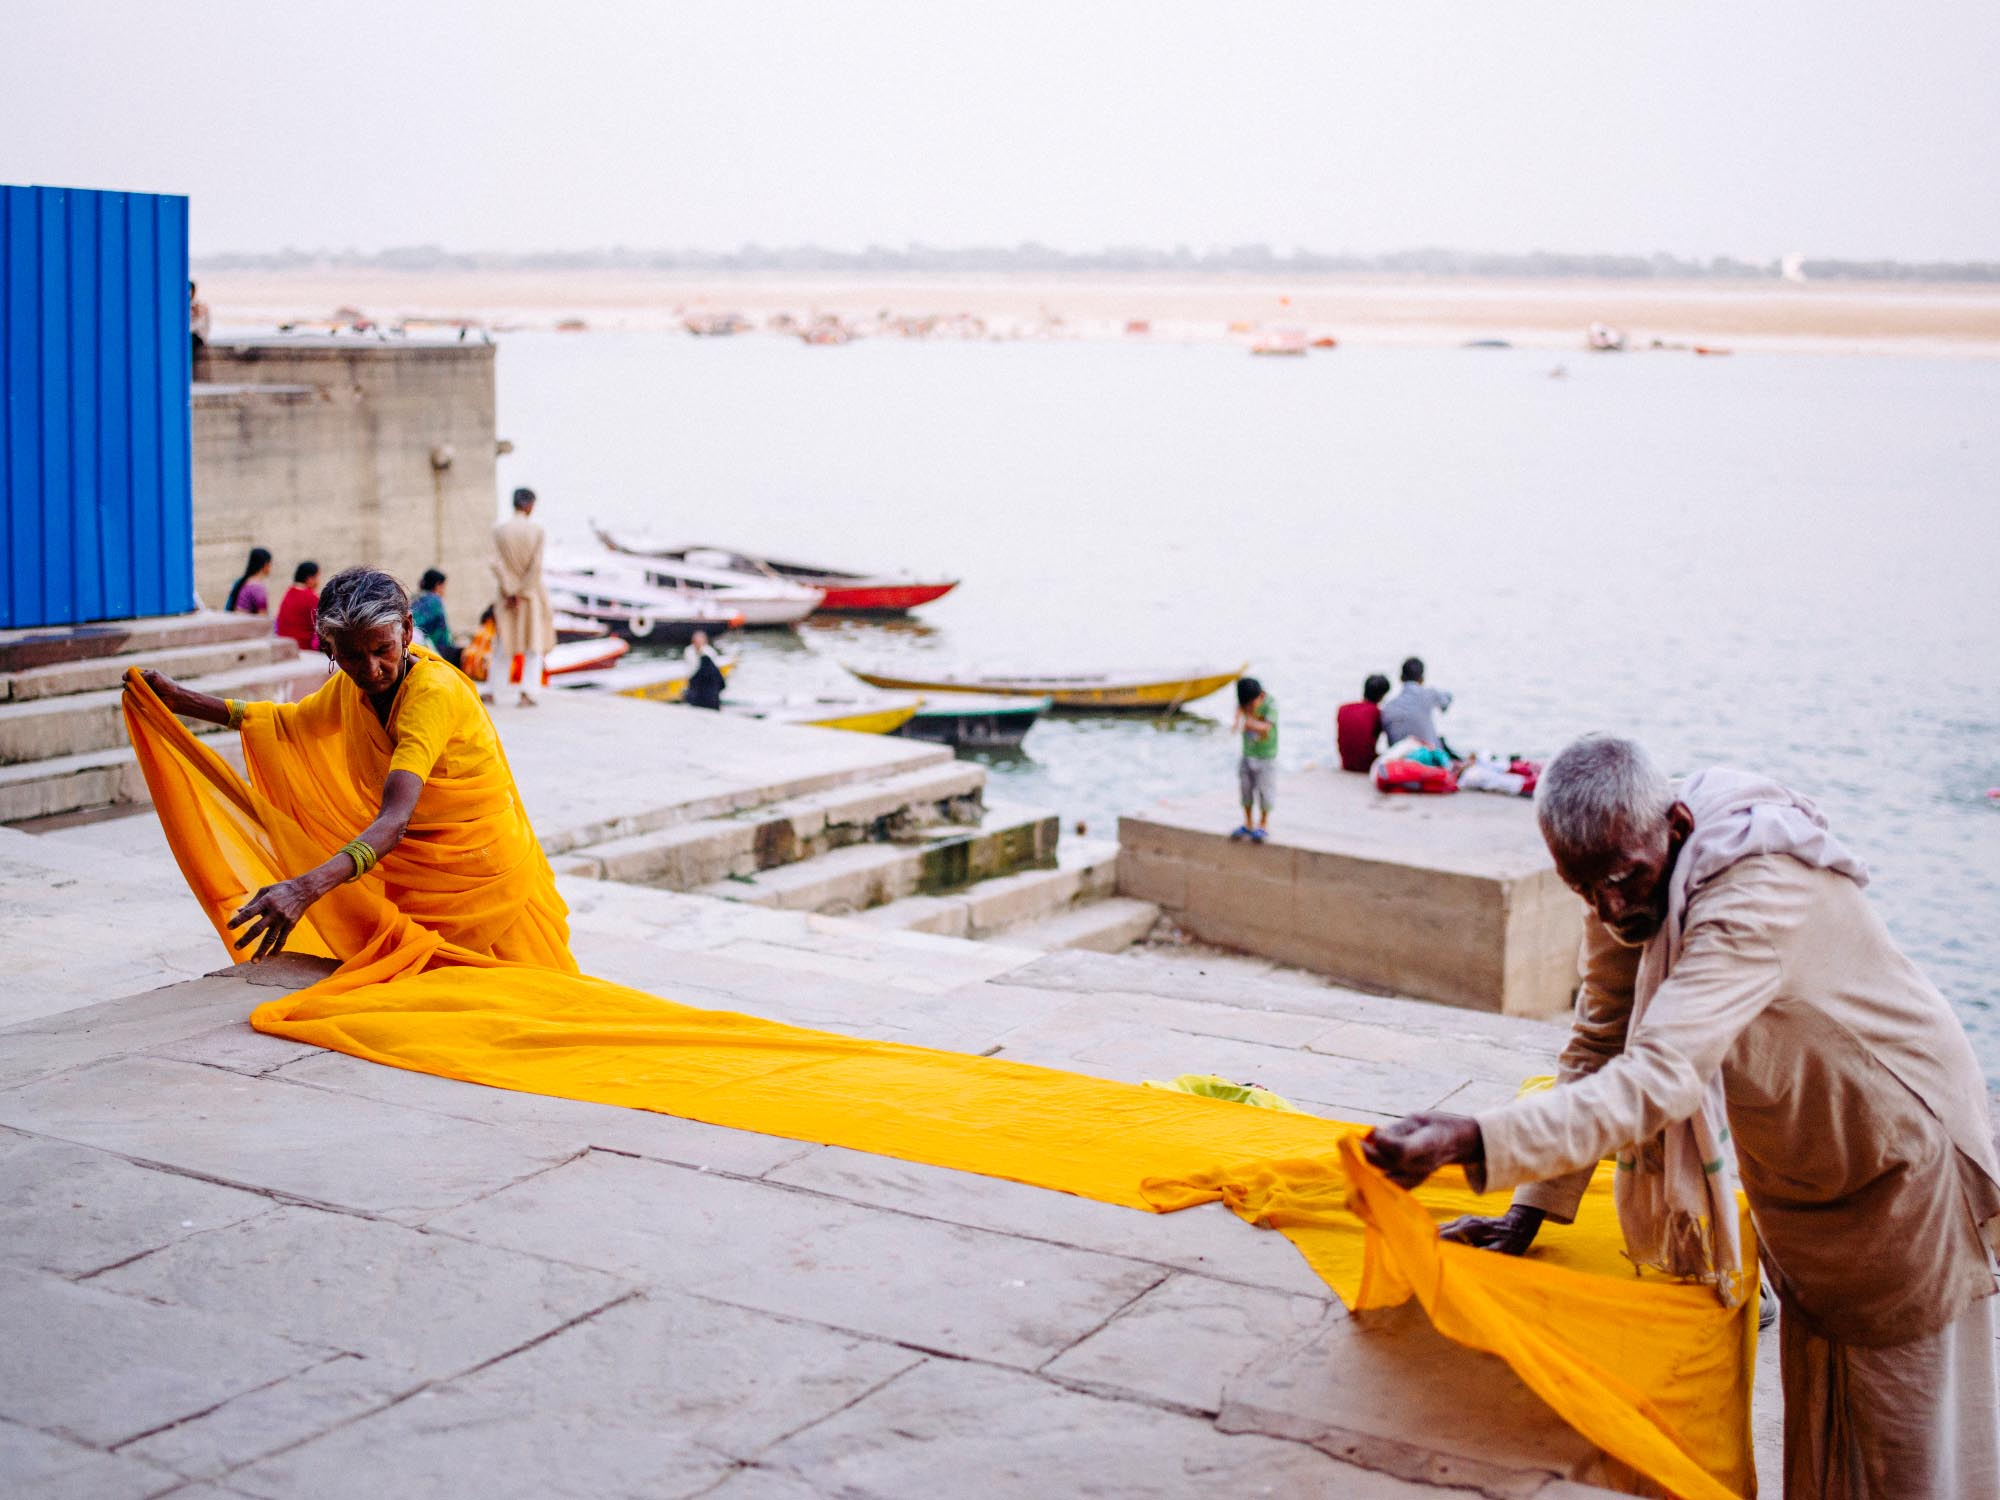 joris-hermans-photography-varanasi-12.jpg